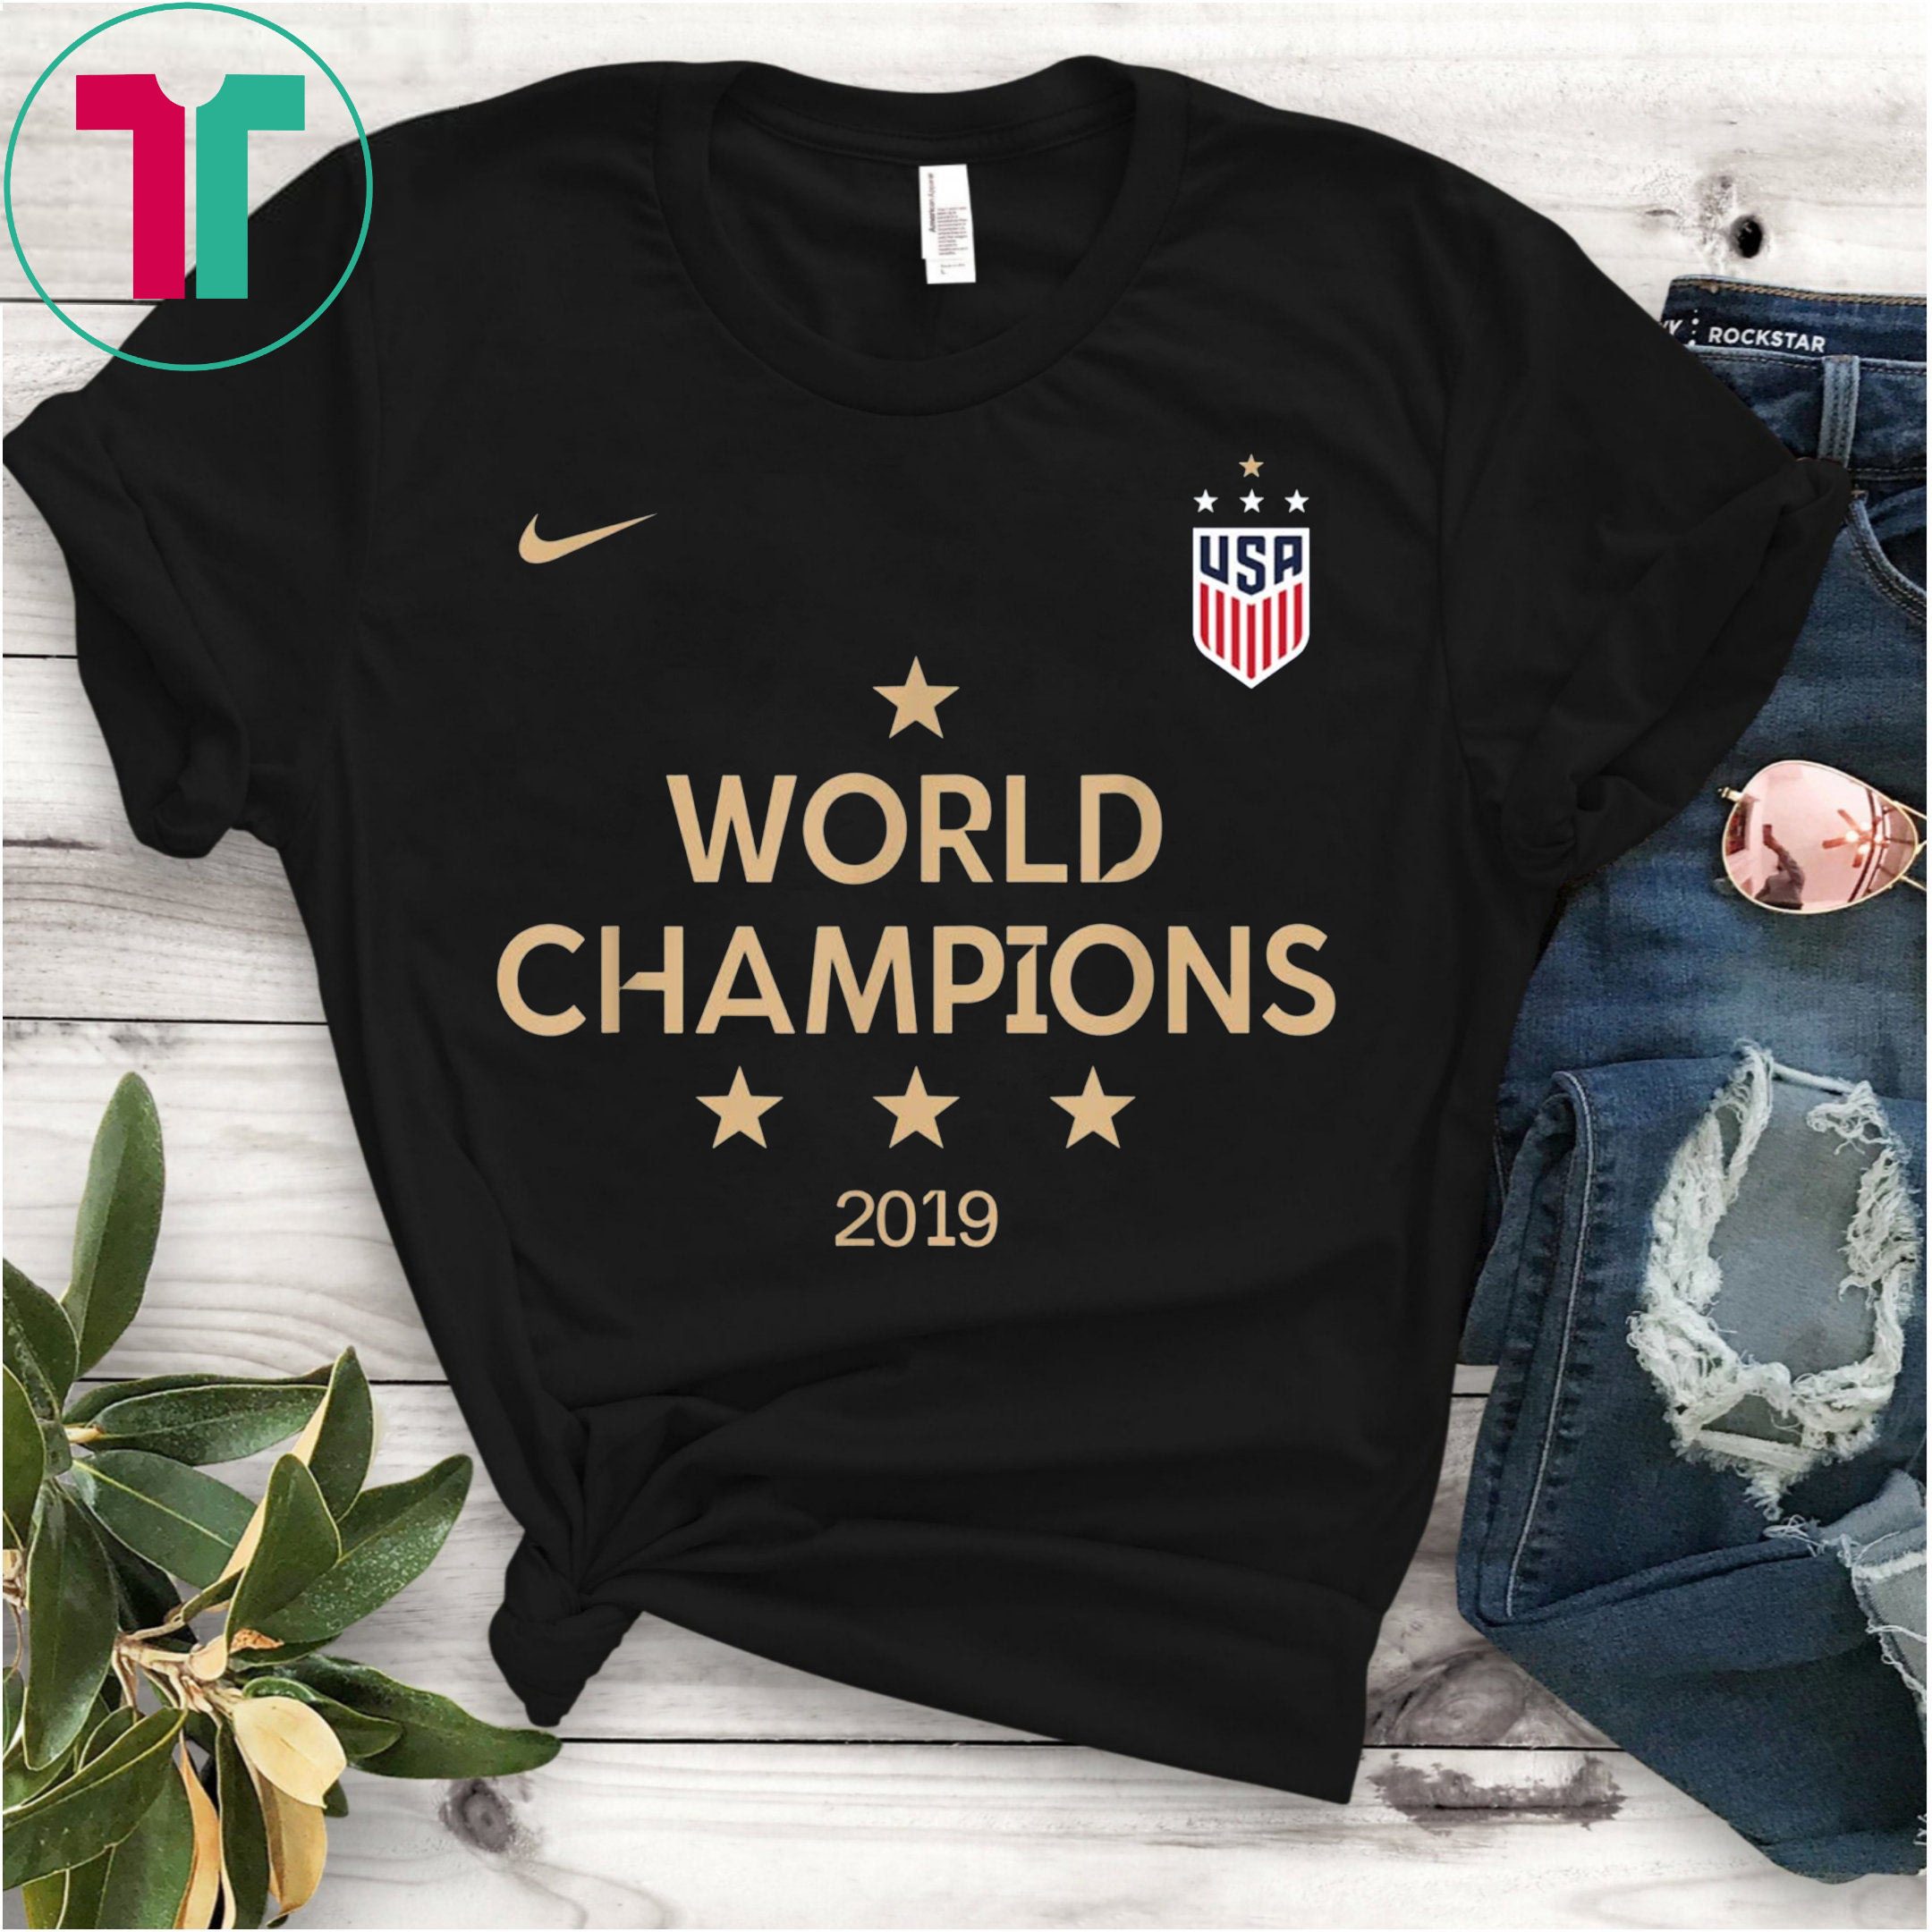 nike t shirt quotes